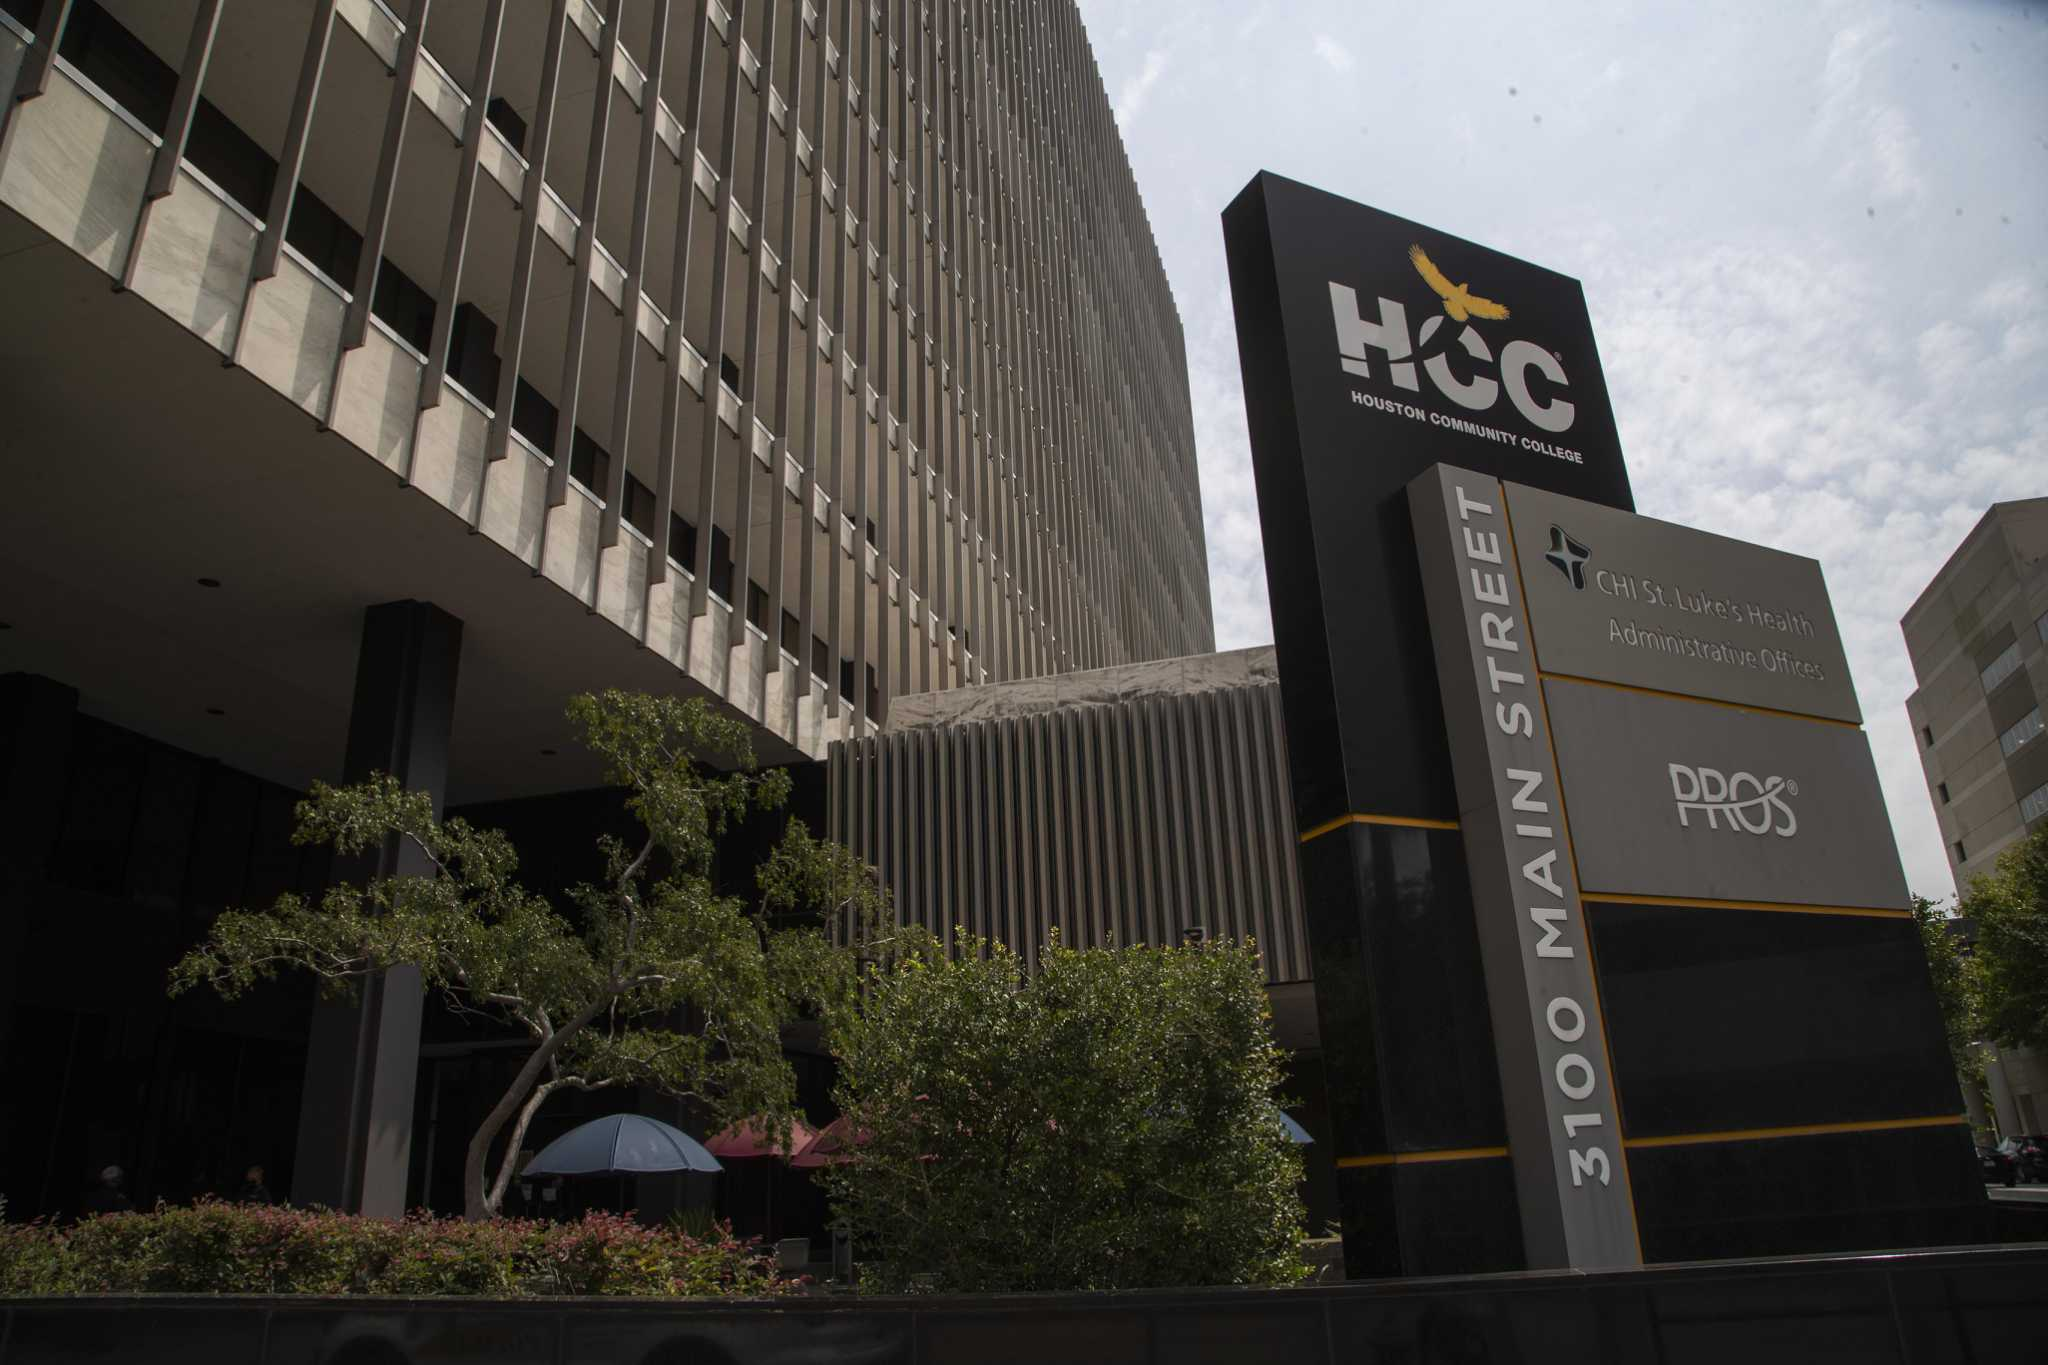 Judge orders HCC to fulfill records requests related to $100M lawsuit